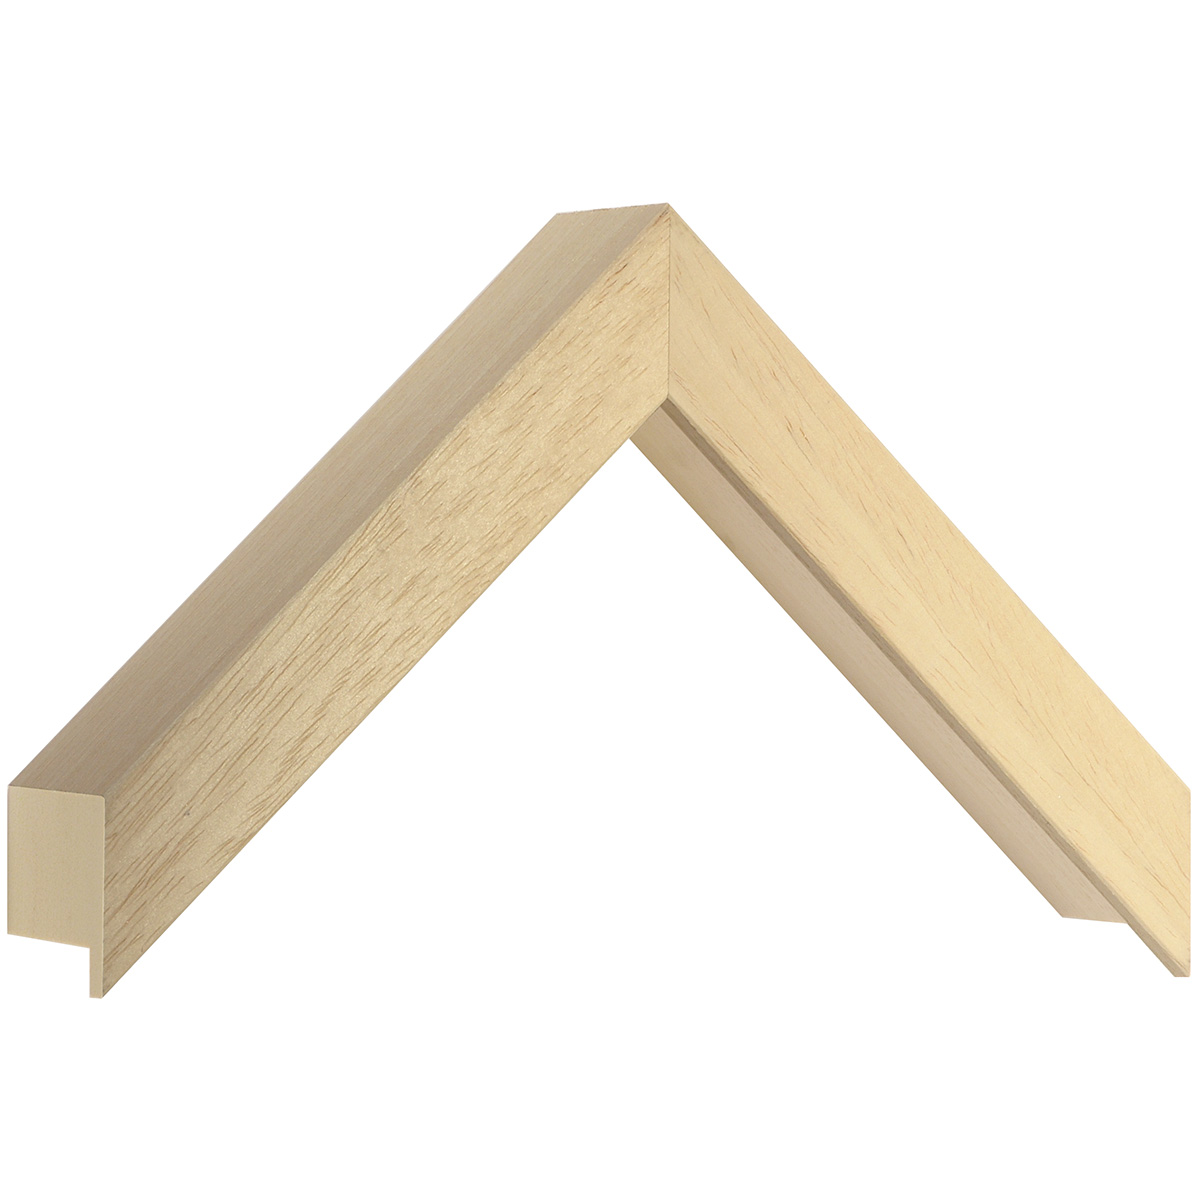 Moulding ayous, width 25mm, height 45mm, bare timber